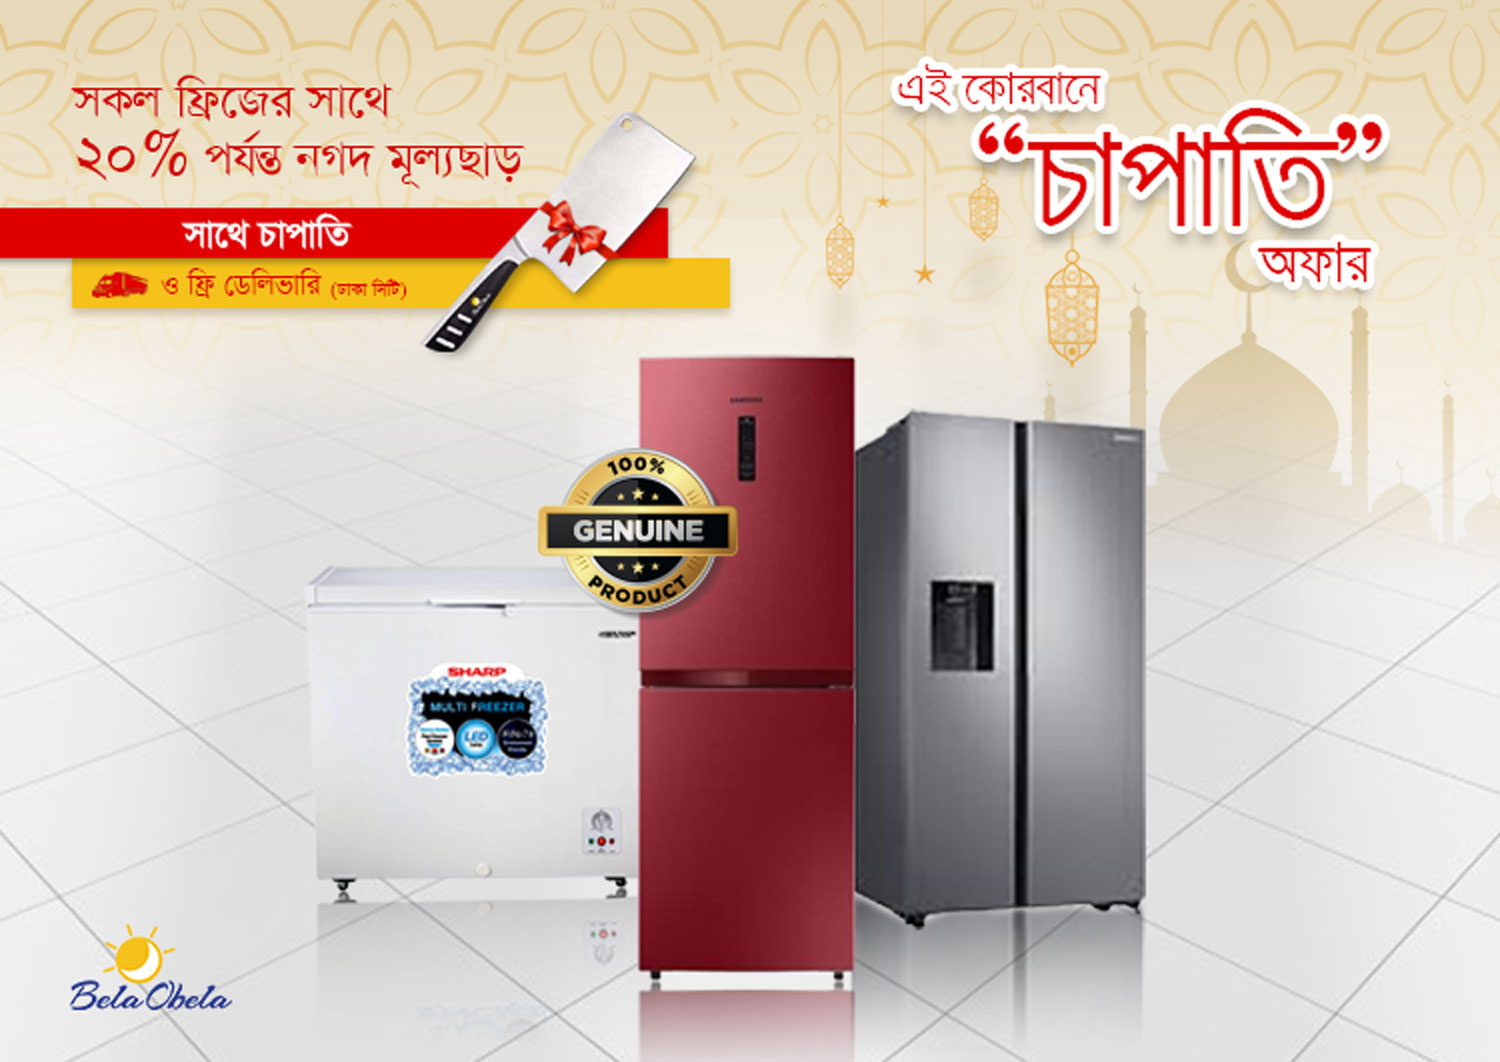 Special Discount Offer for Eid-ul-Adha